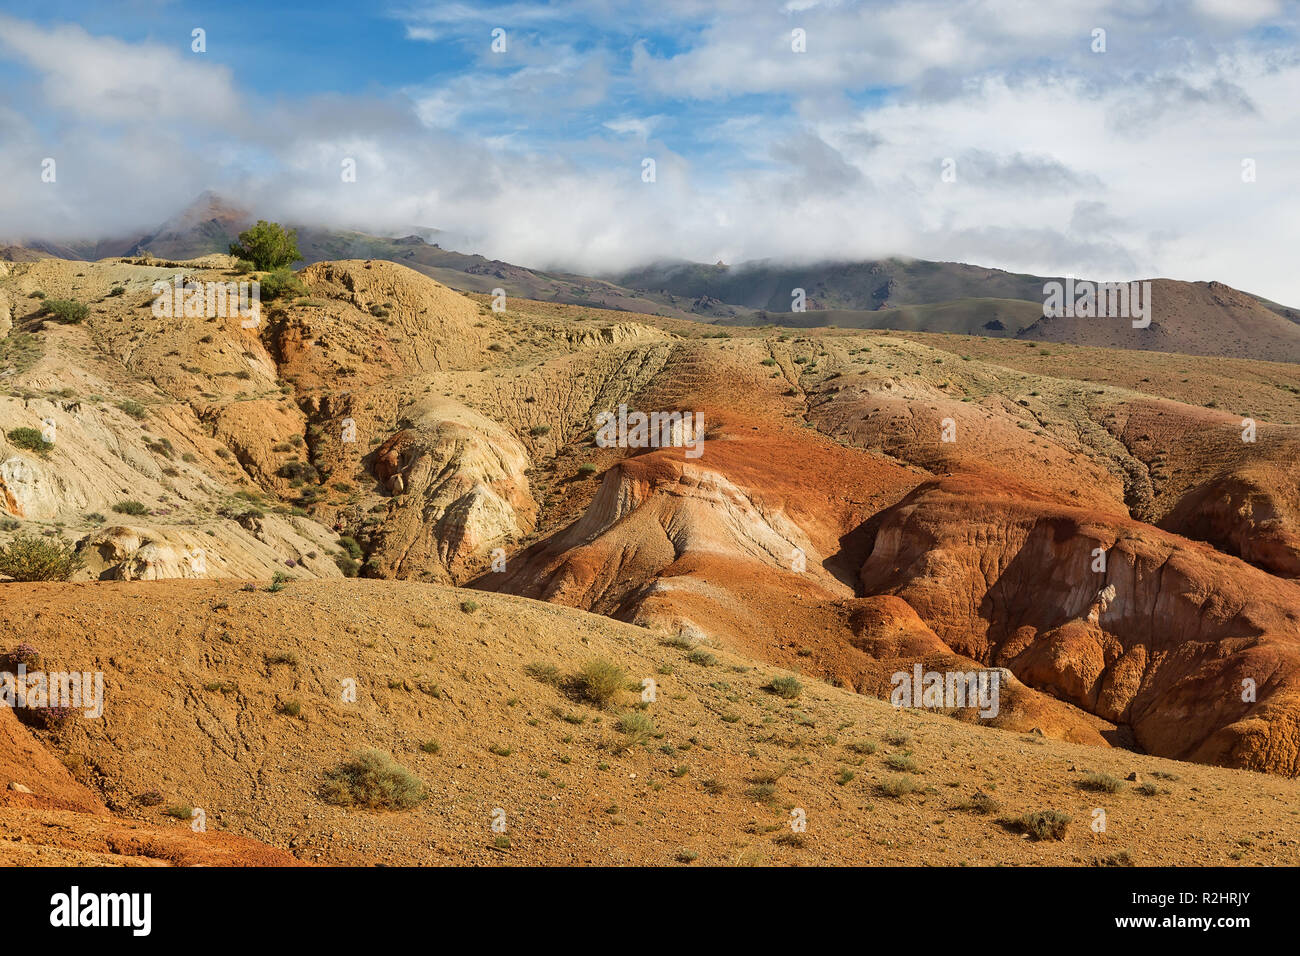 Terrain with the name 'Mars', Republic of Altai, Russia - Stock Image